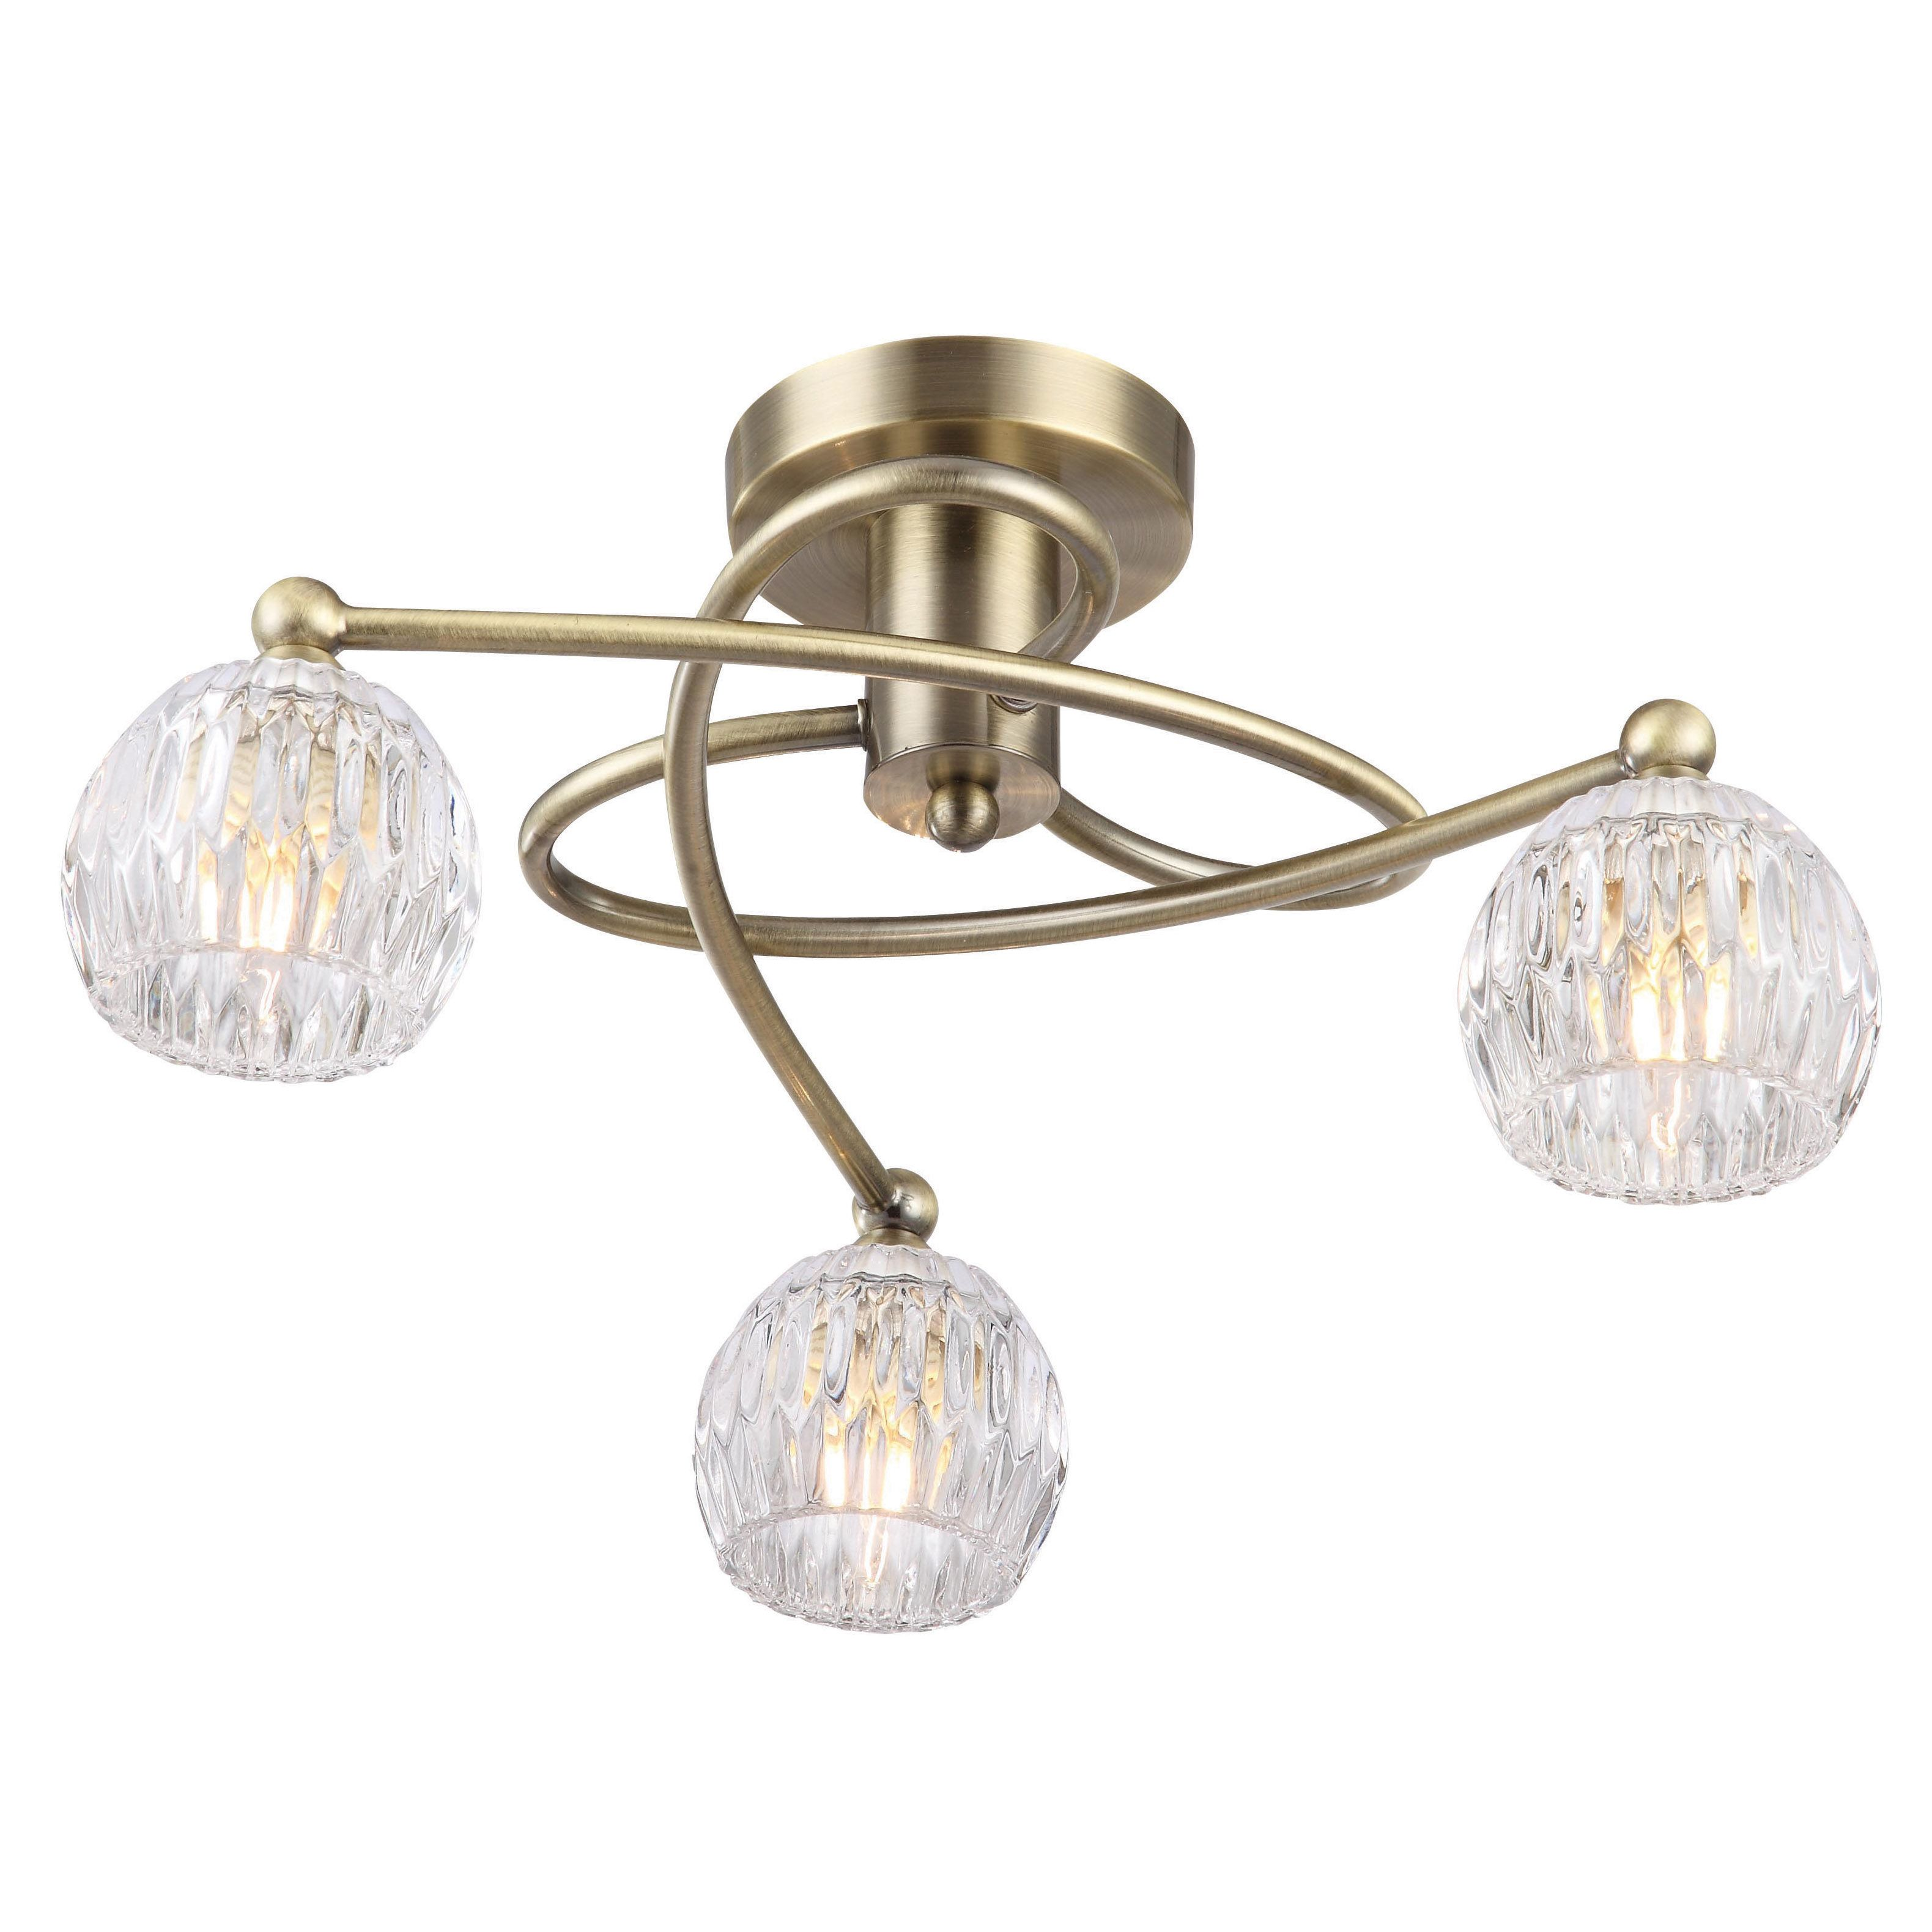 Steyning clear 3 lamp ceiling light departments diy at bq aloadofball Images